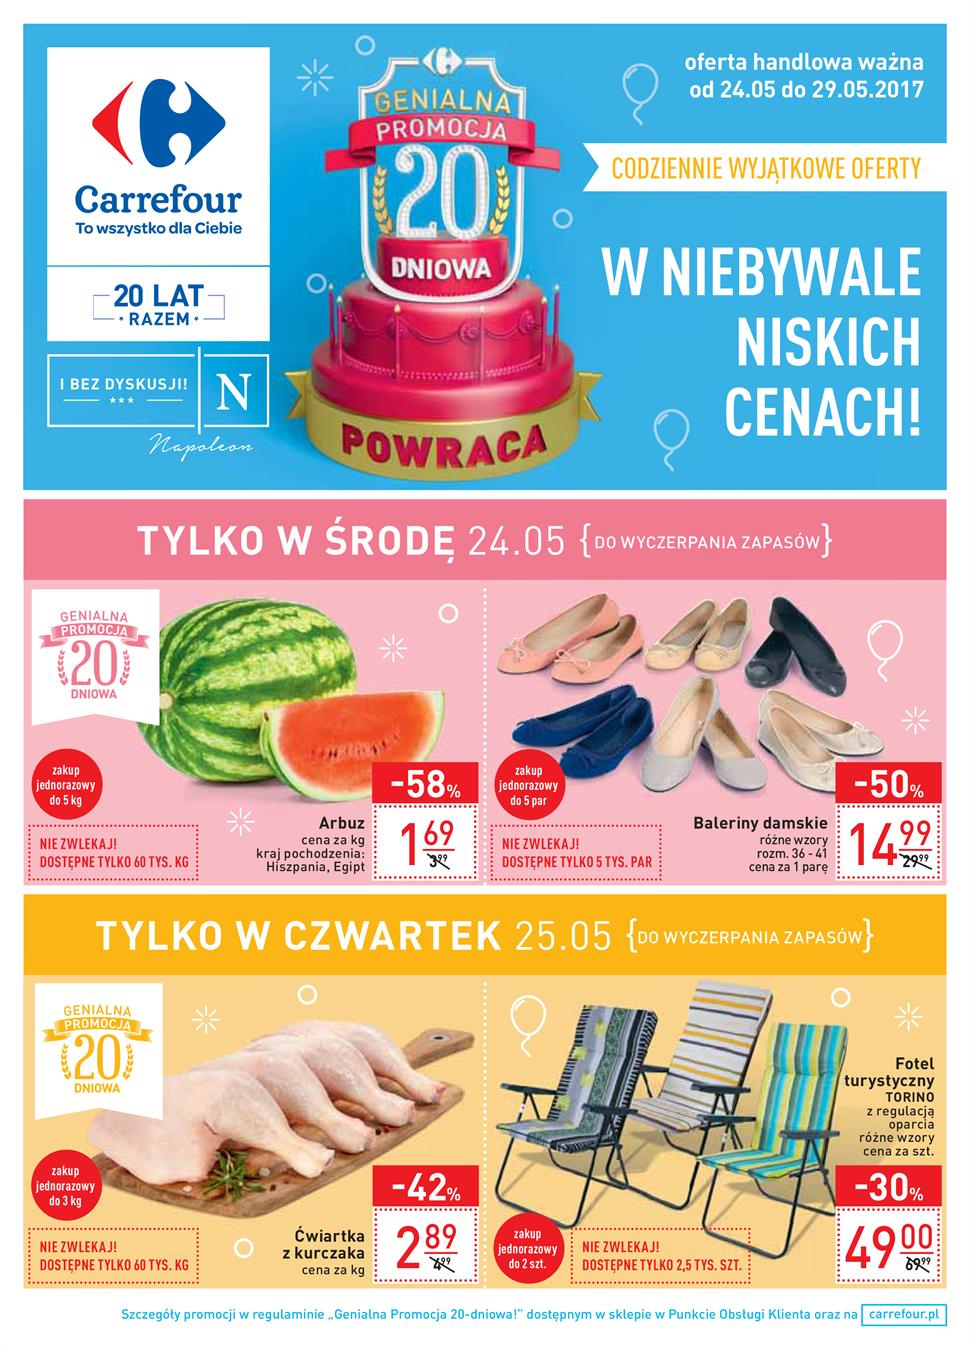 Gazetka Carrefour Polska Sp. z o.o. nr 0 od 2017-05-24 do 2017-05-29